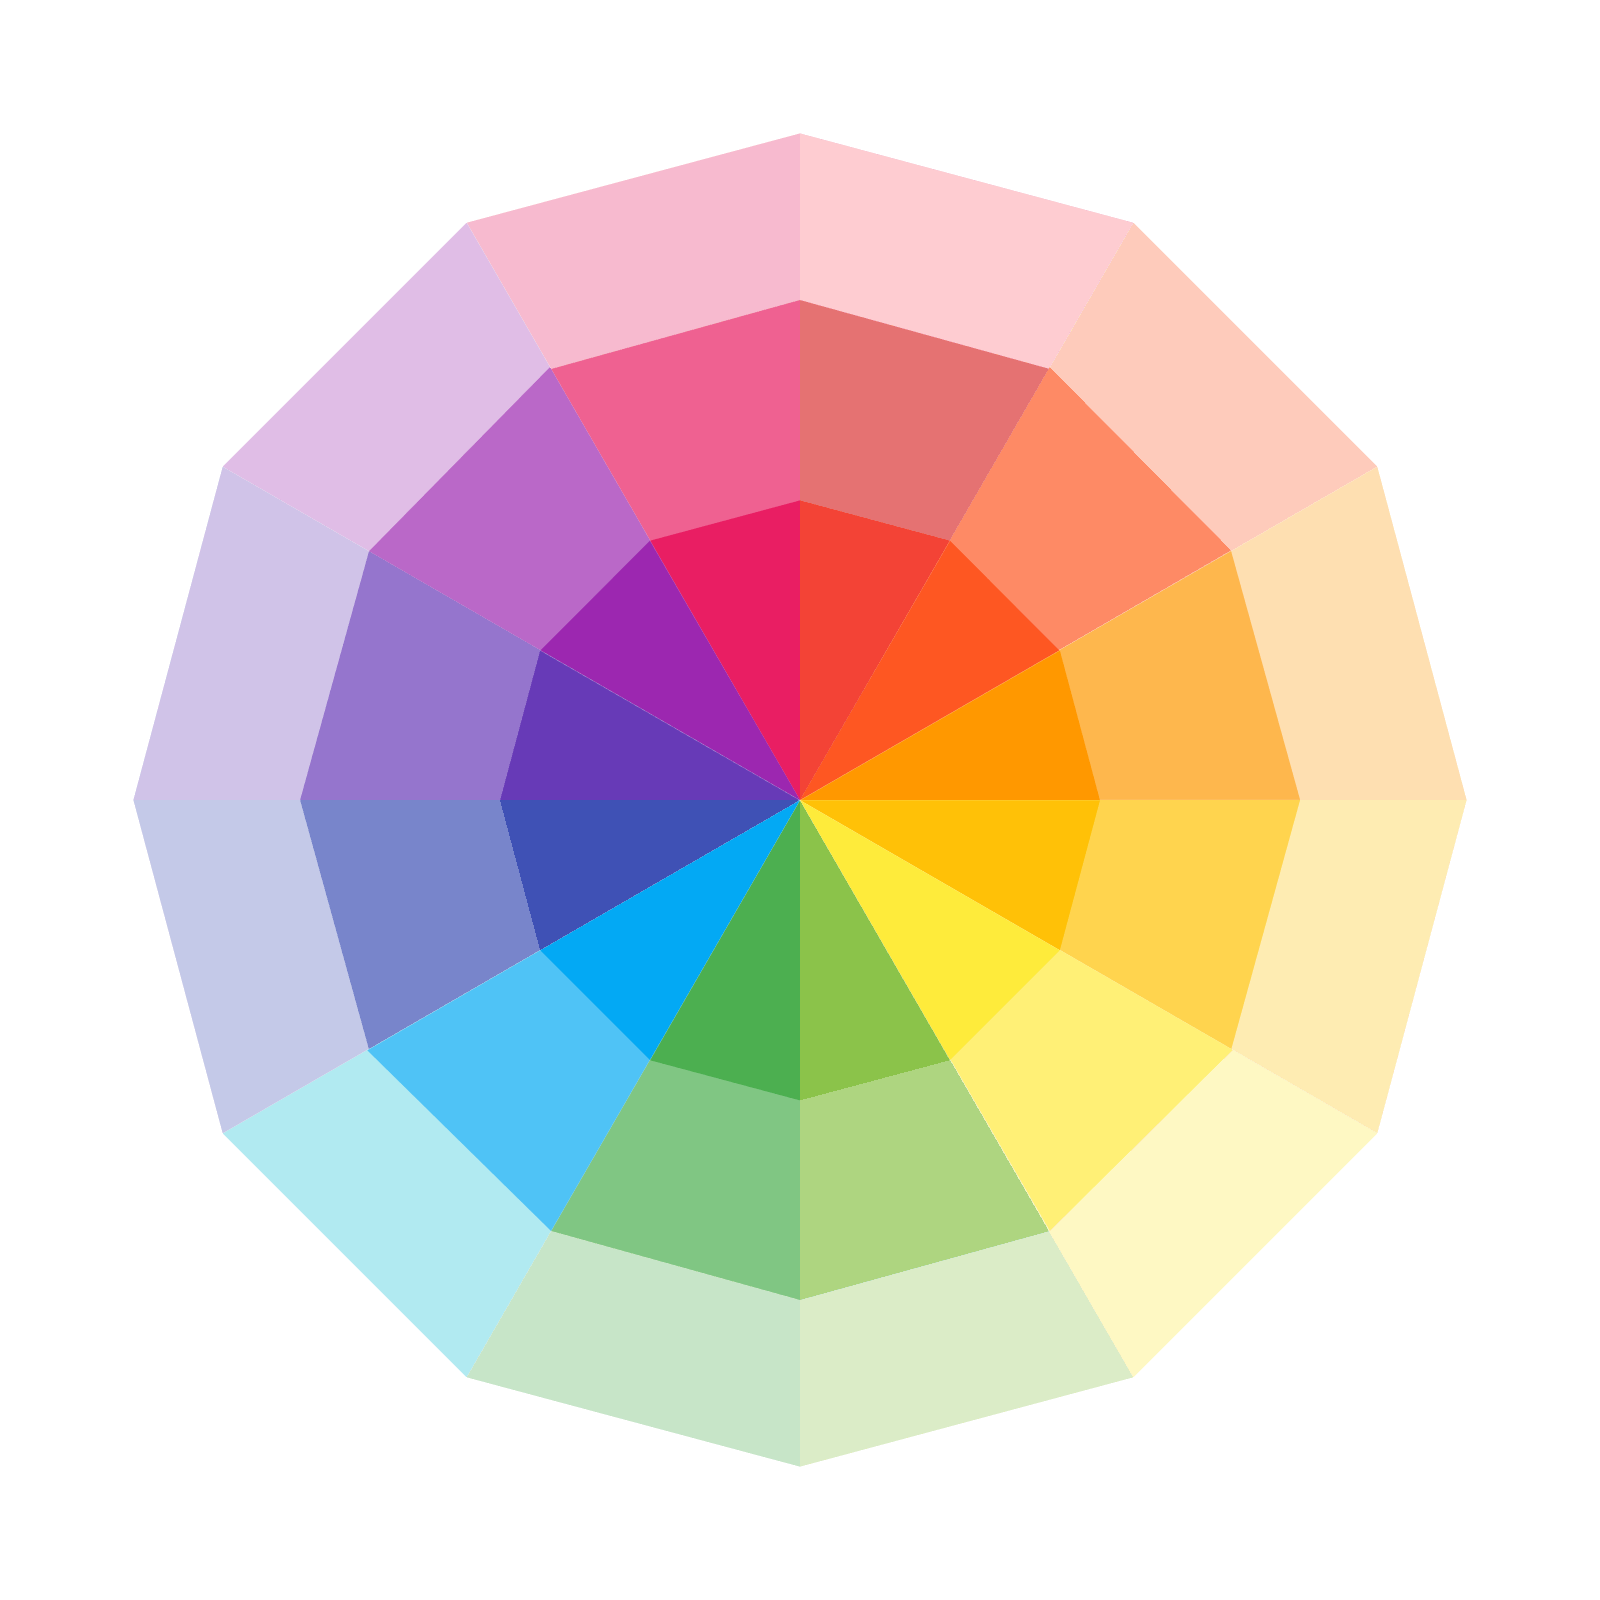 Color png. Wheel icon free download